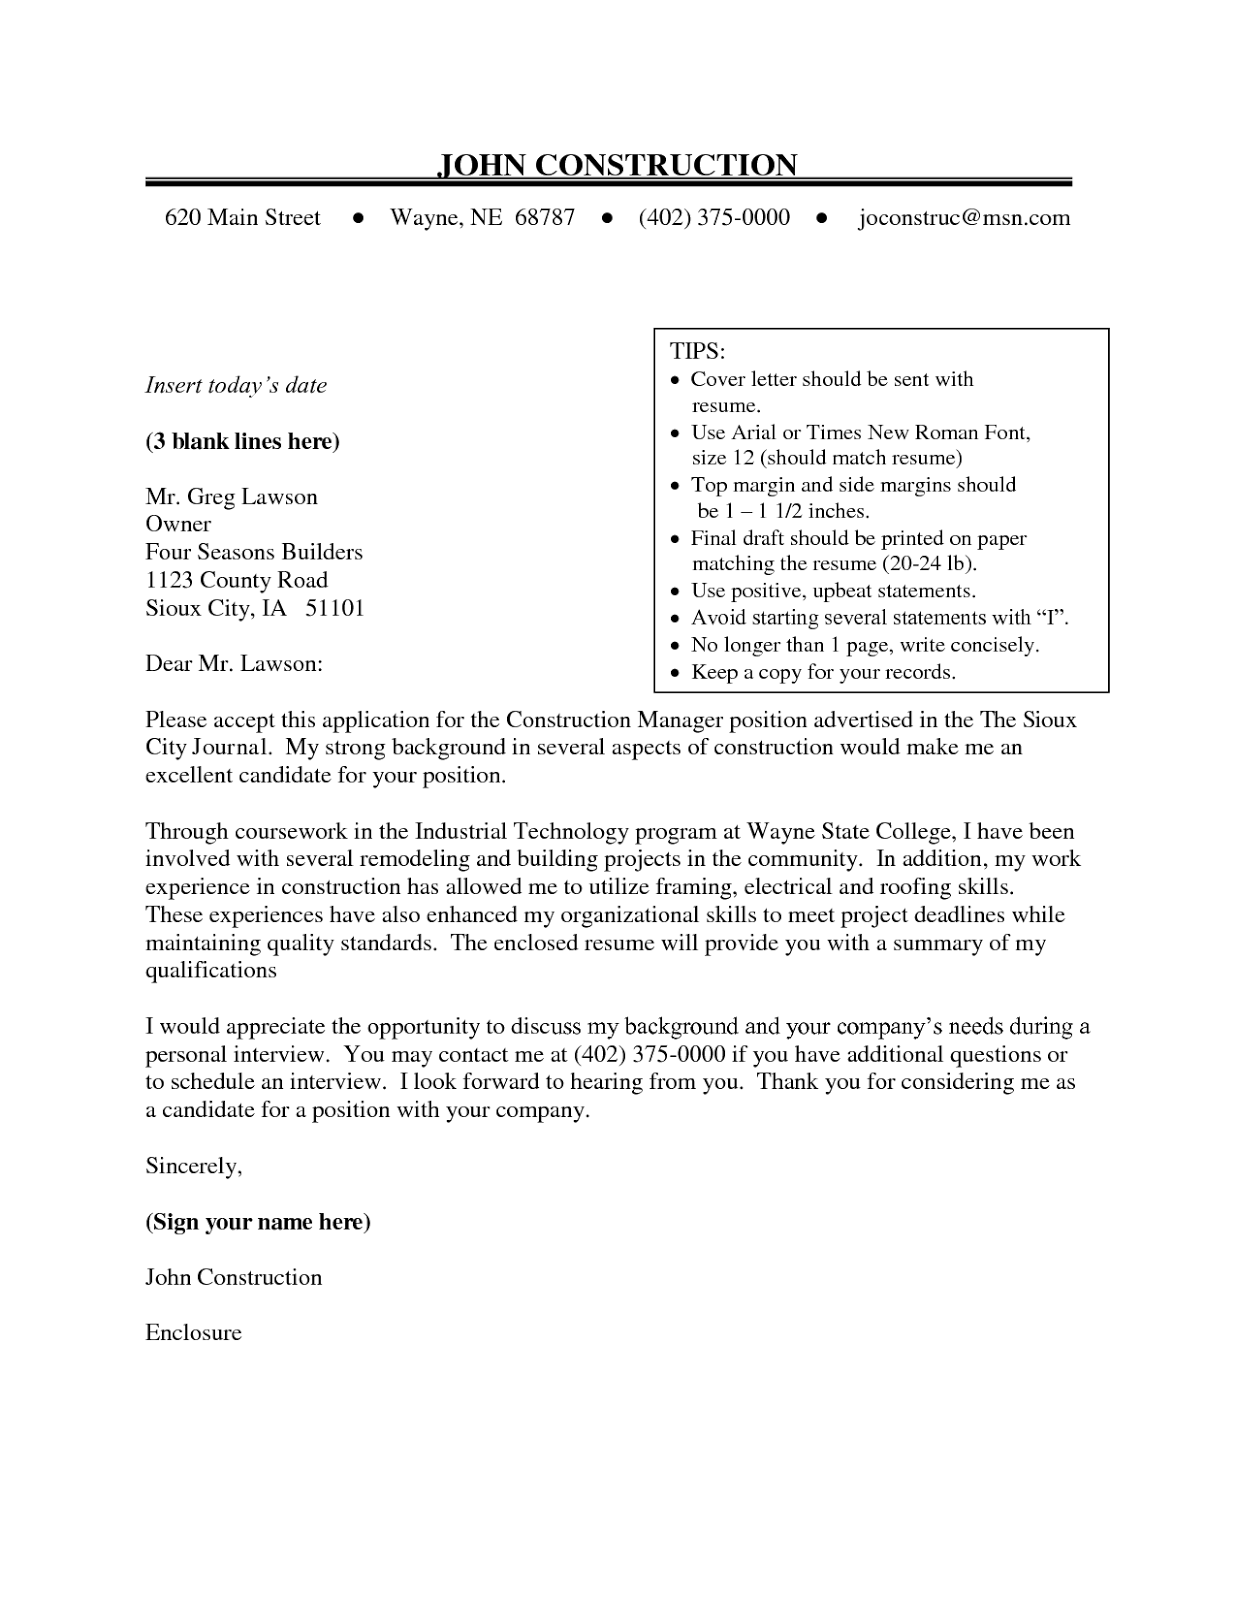 cover letter sending your resume and cover letters via email do i send a cover letter - Format For Resume Cover Letter